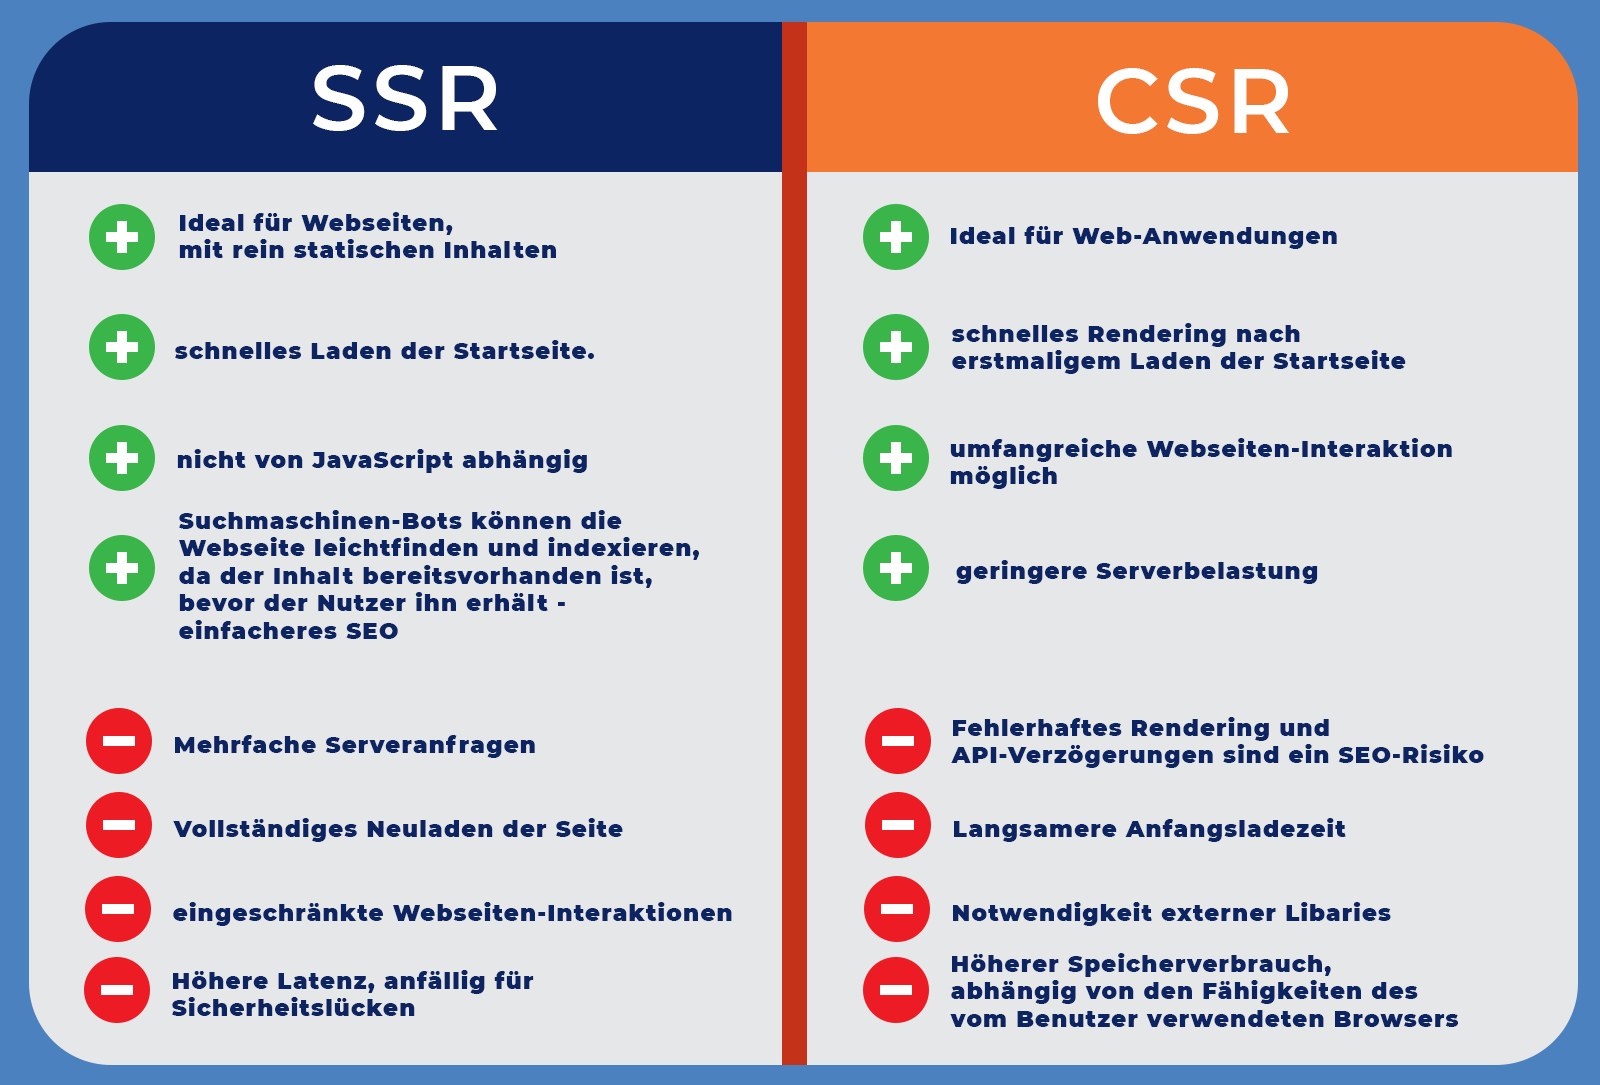 SSR vs CSR comparison table of strengths and weaknesses in German